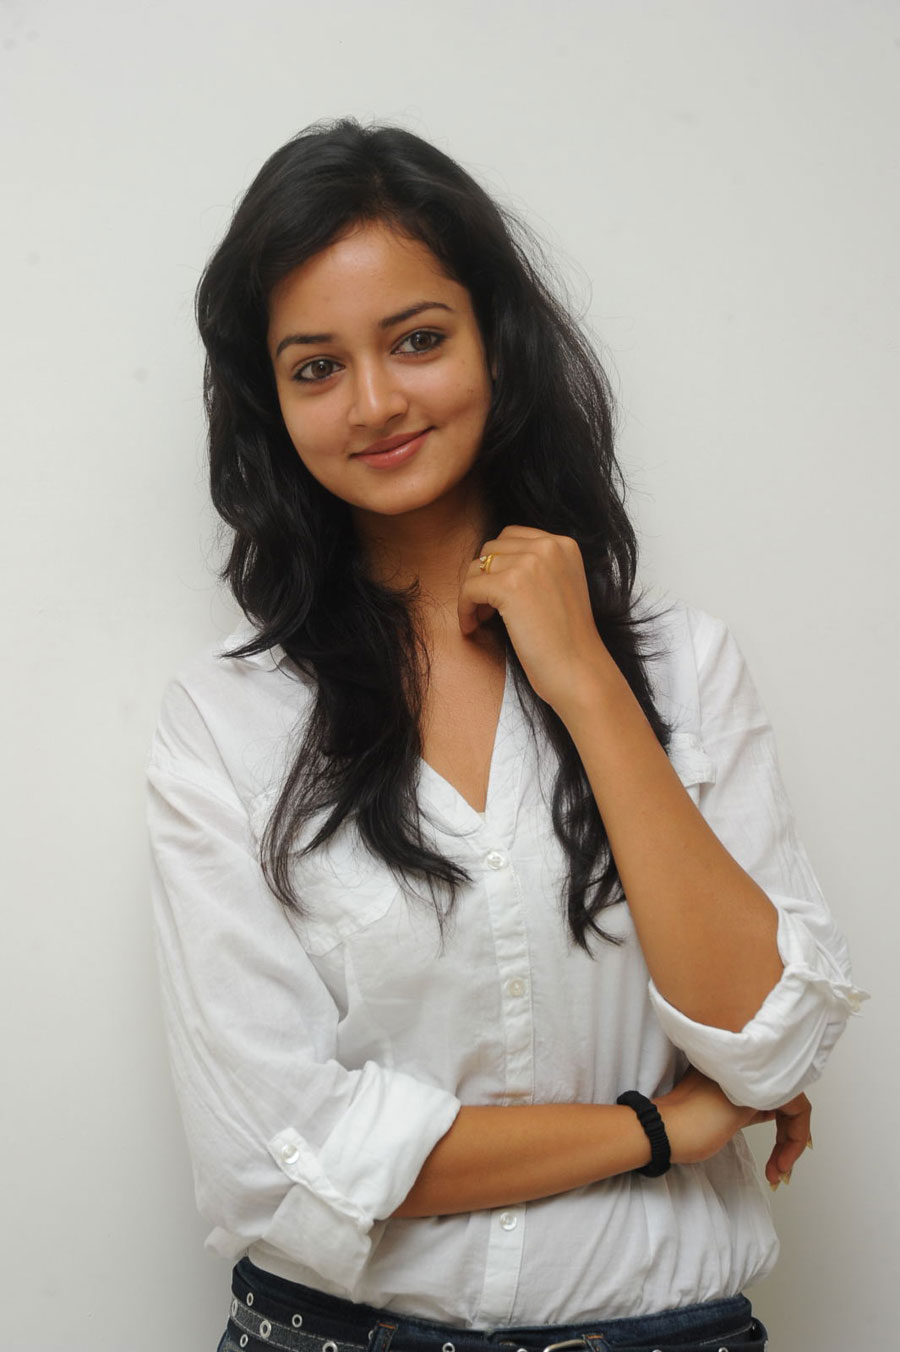 Shanvi Shoot in Adda Press Meet Photo Gallery Sanvi-24